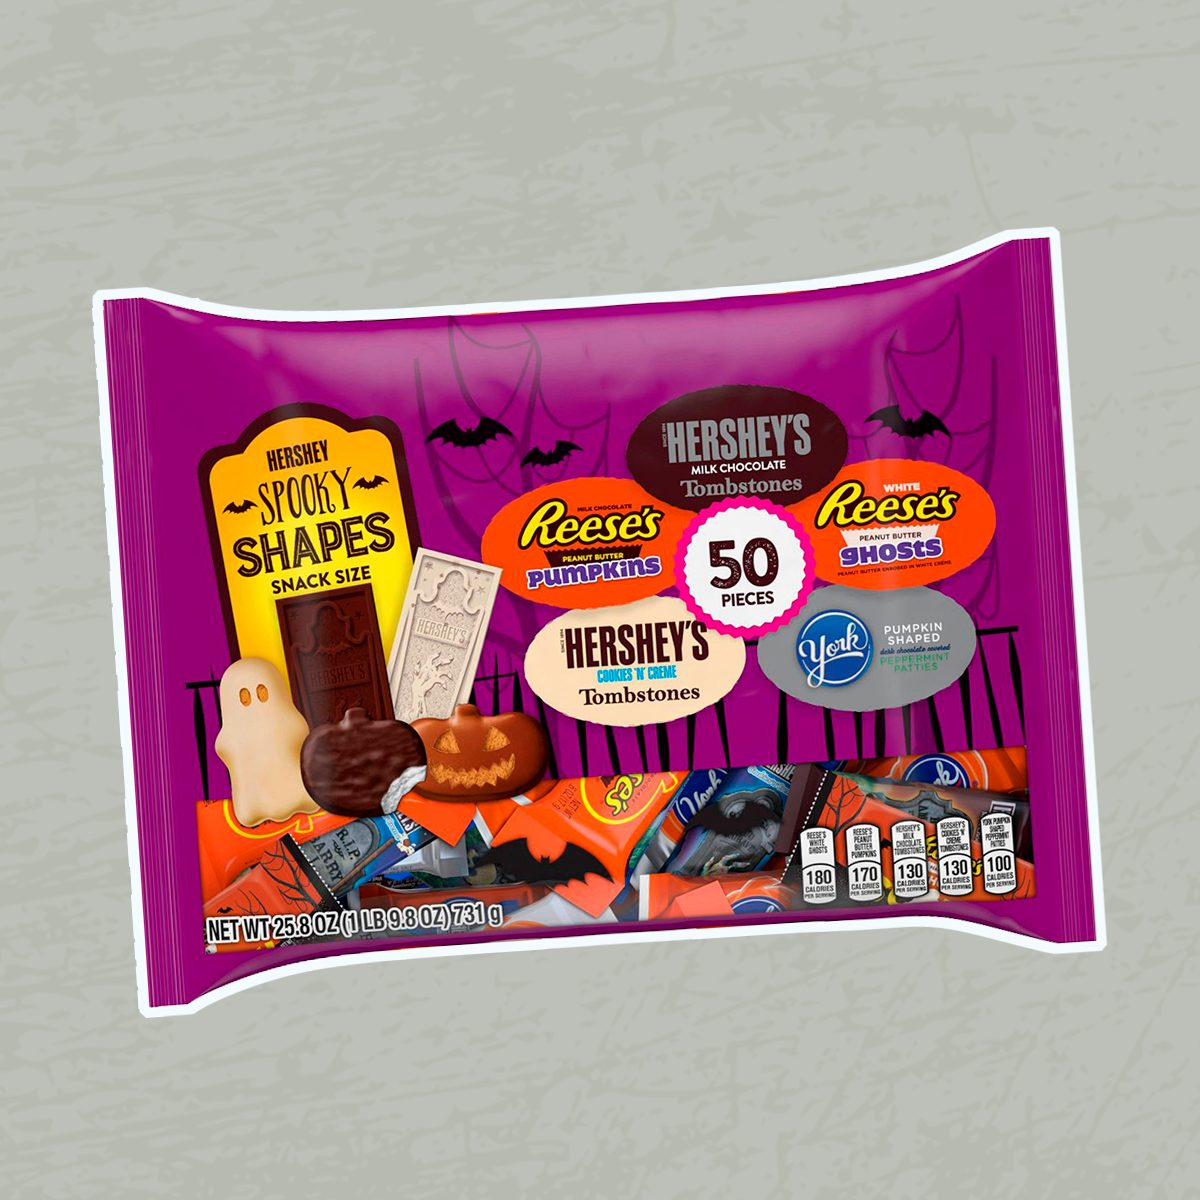 Reese's Hershey's Cookies N Creme and York Peppermint Patties Halloween Spooky Shapes Snack Size Variety Bag